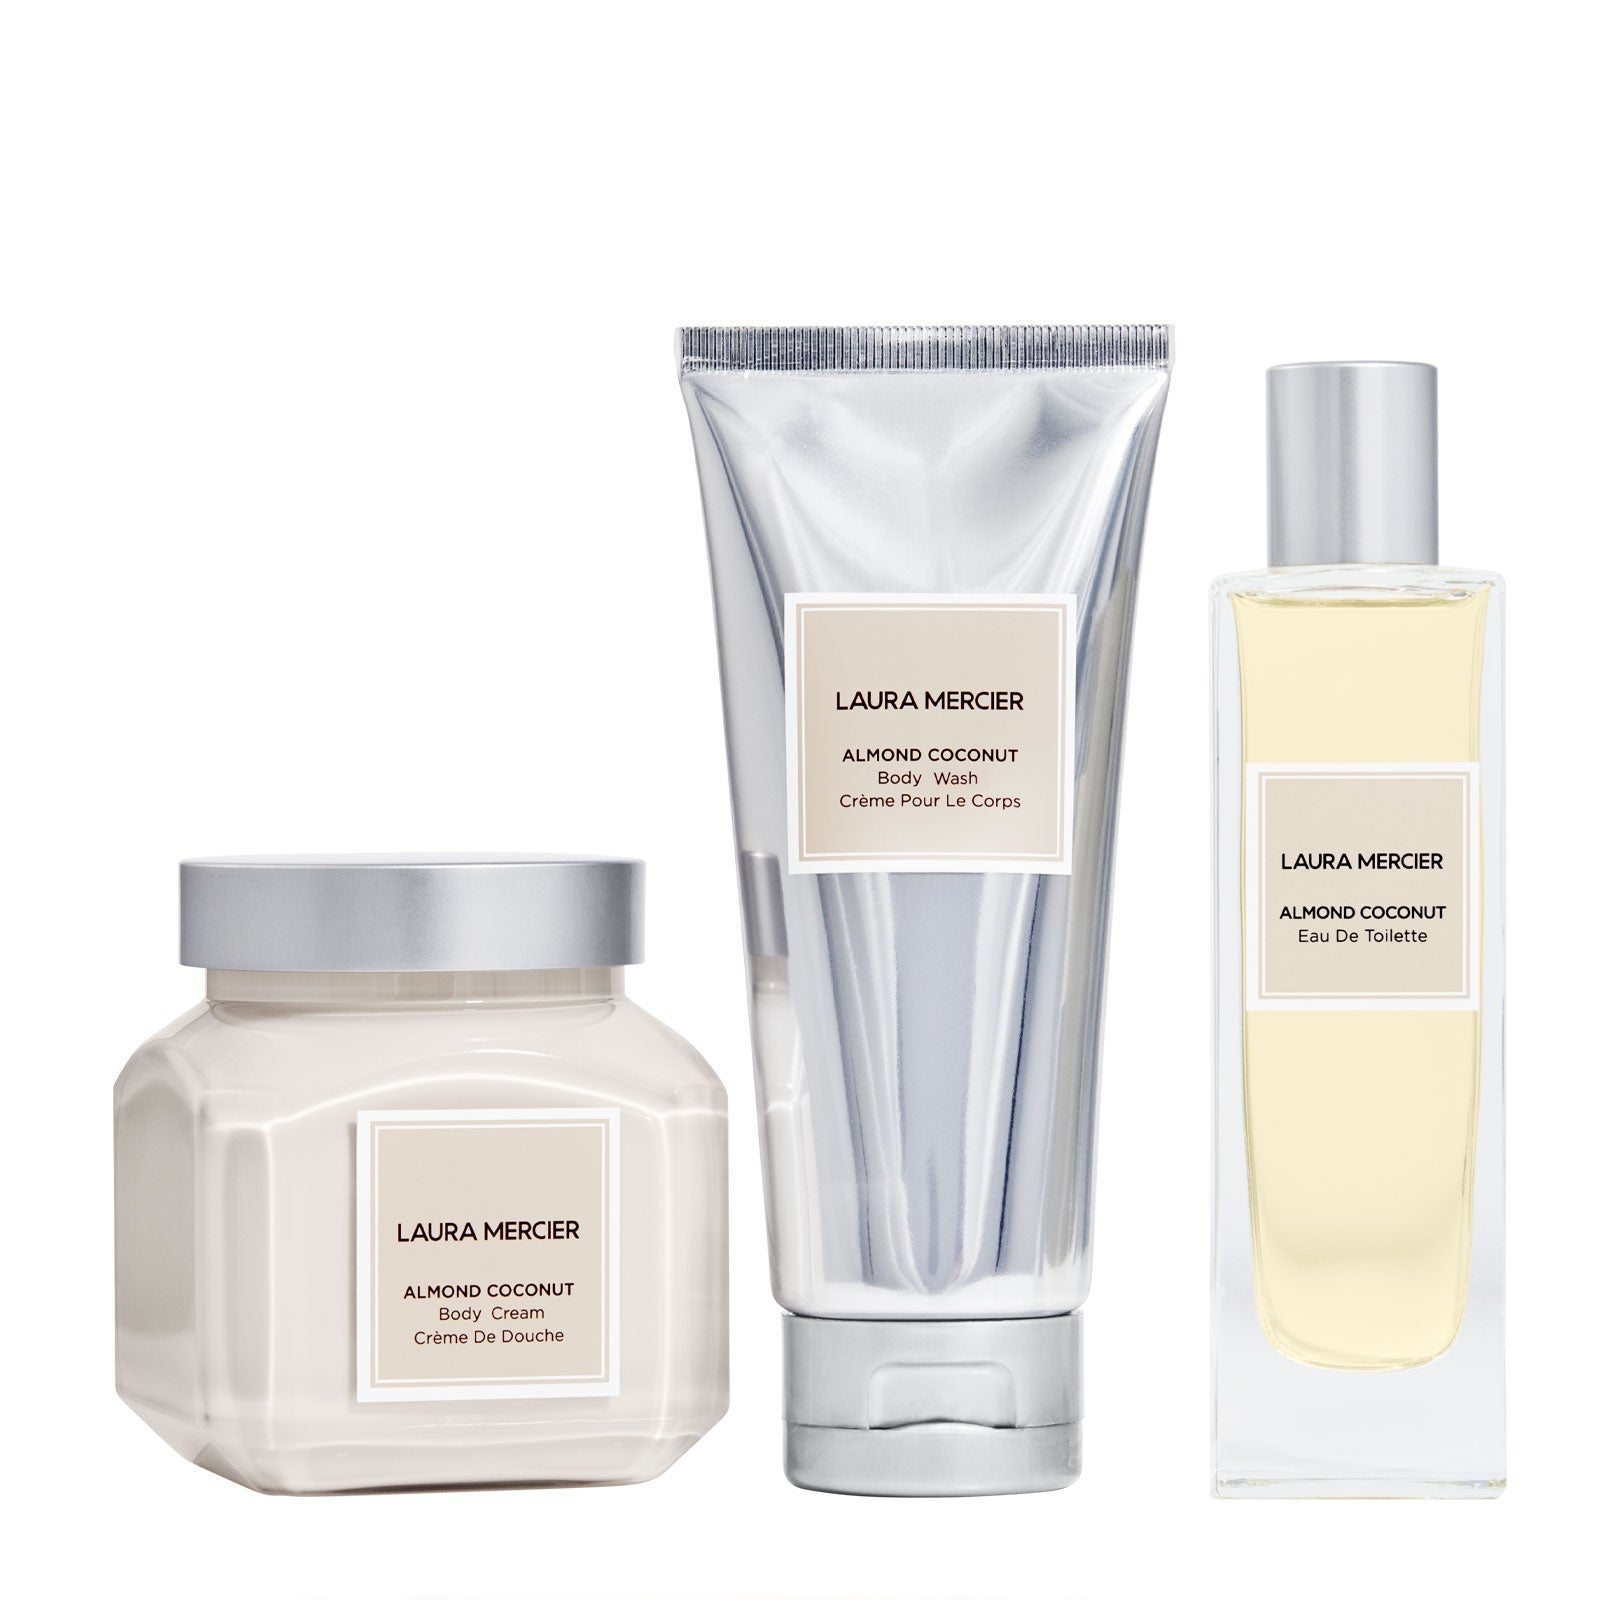 Laura Mercier Luxe Indulgence Almond Coconut Body Triplet